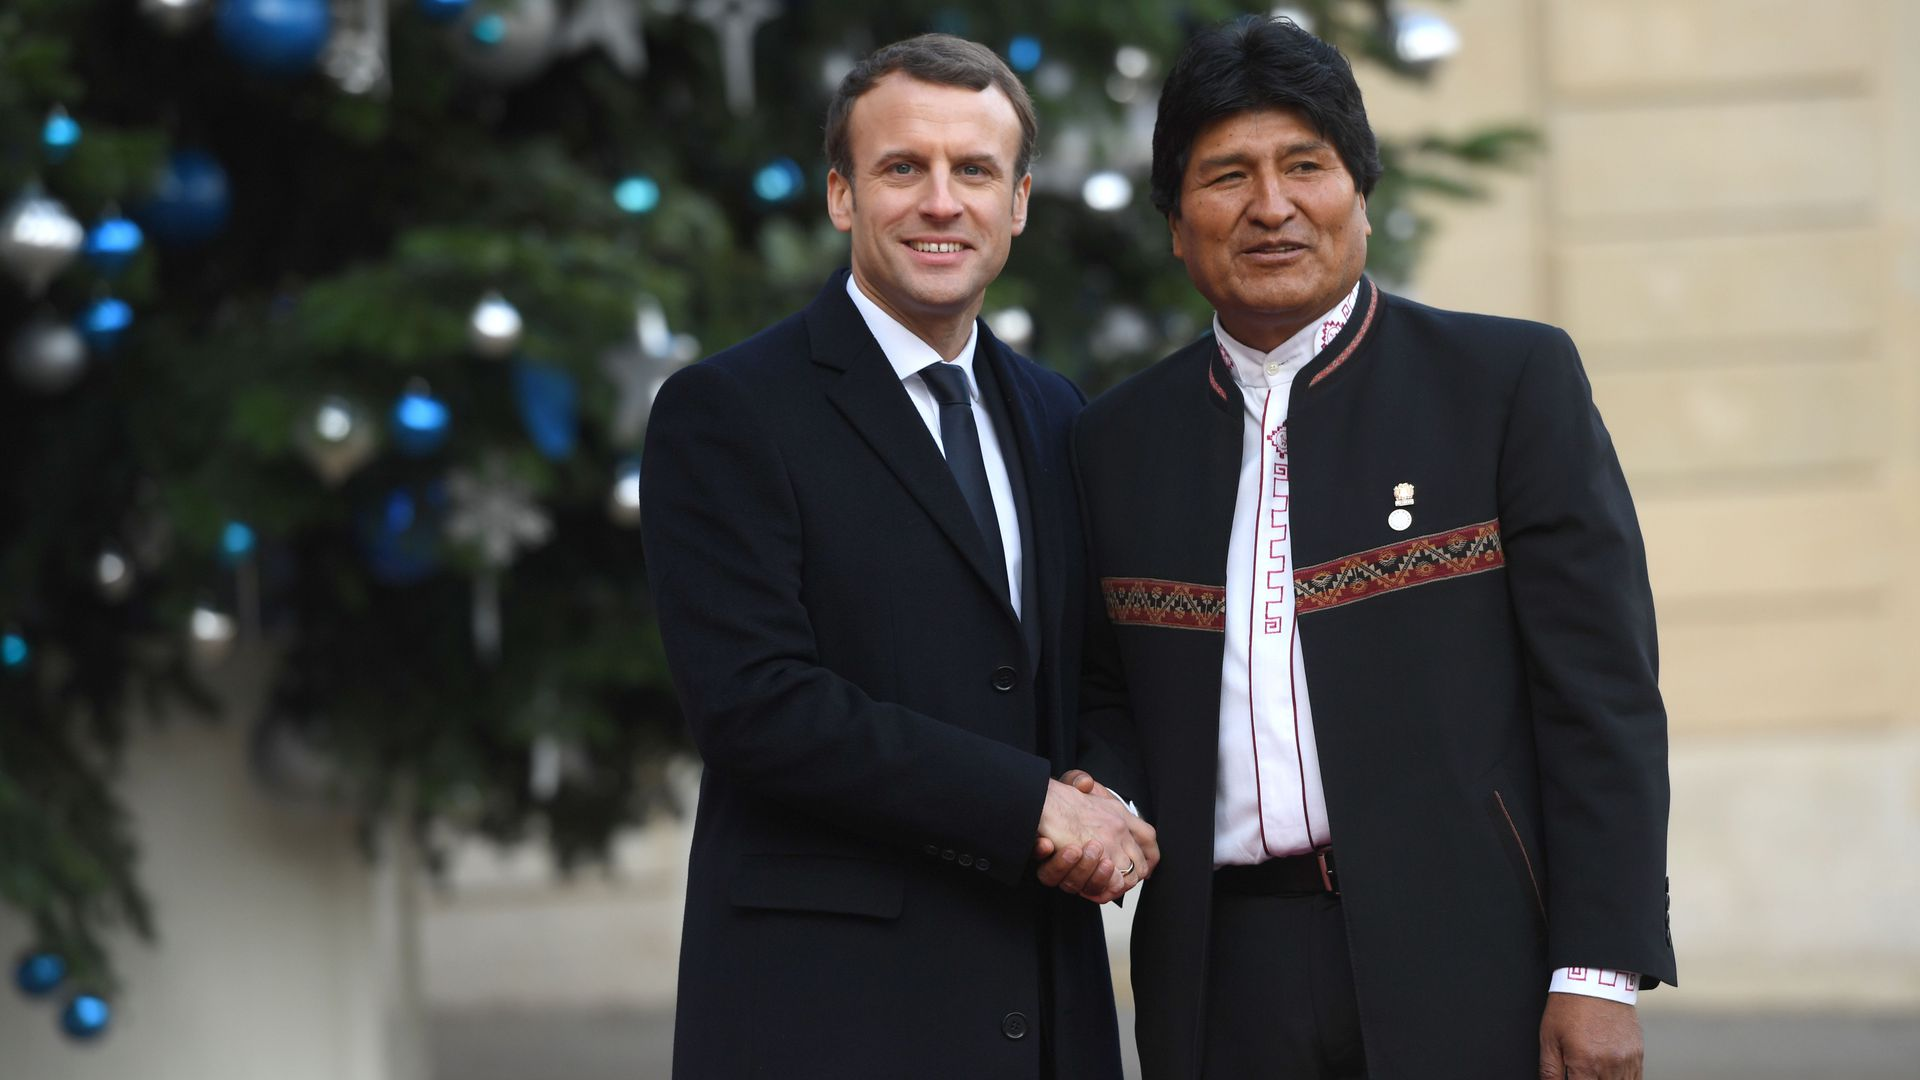 French President Emmanuel Macron greets Bolivian President Evo Morales upon his arrival at the Elysée palace on December 12, 2017.